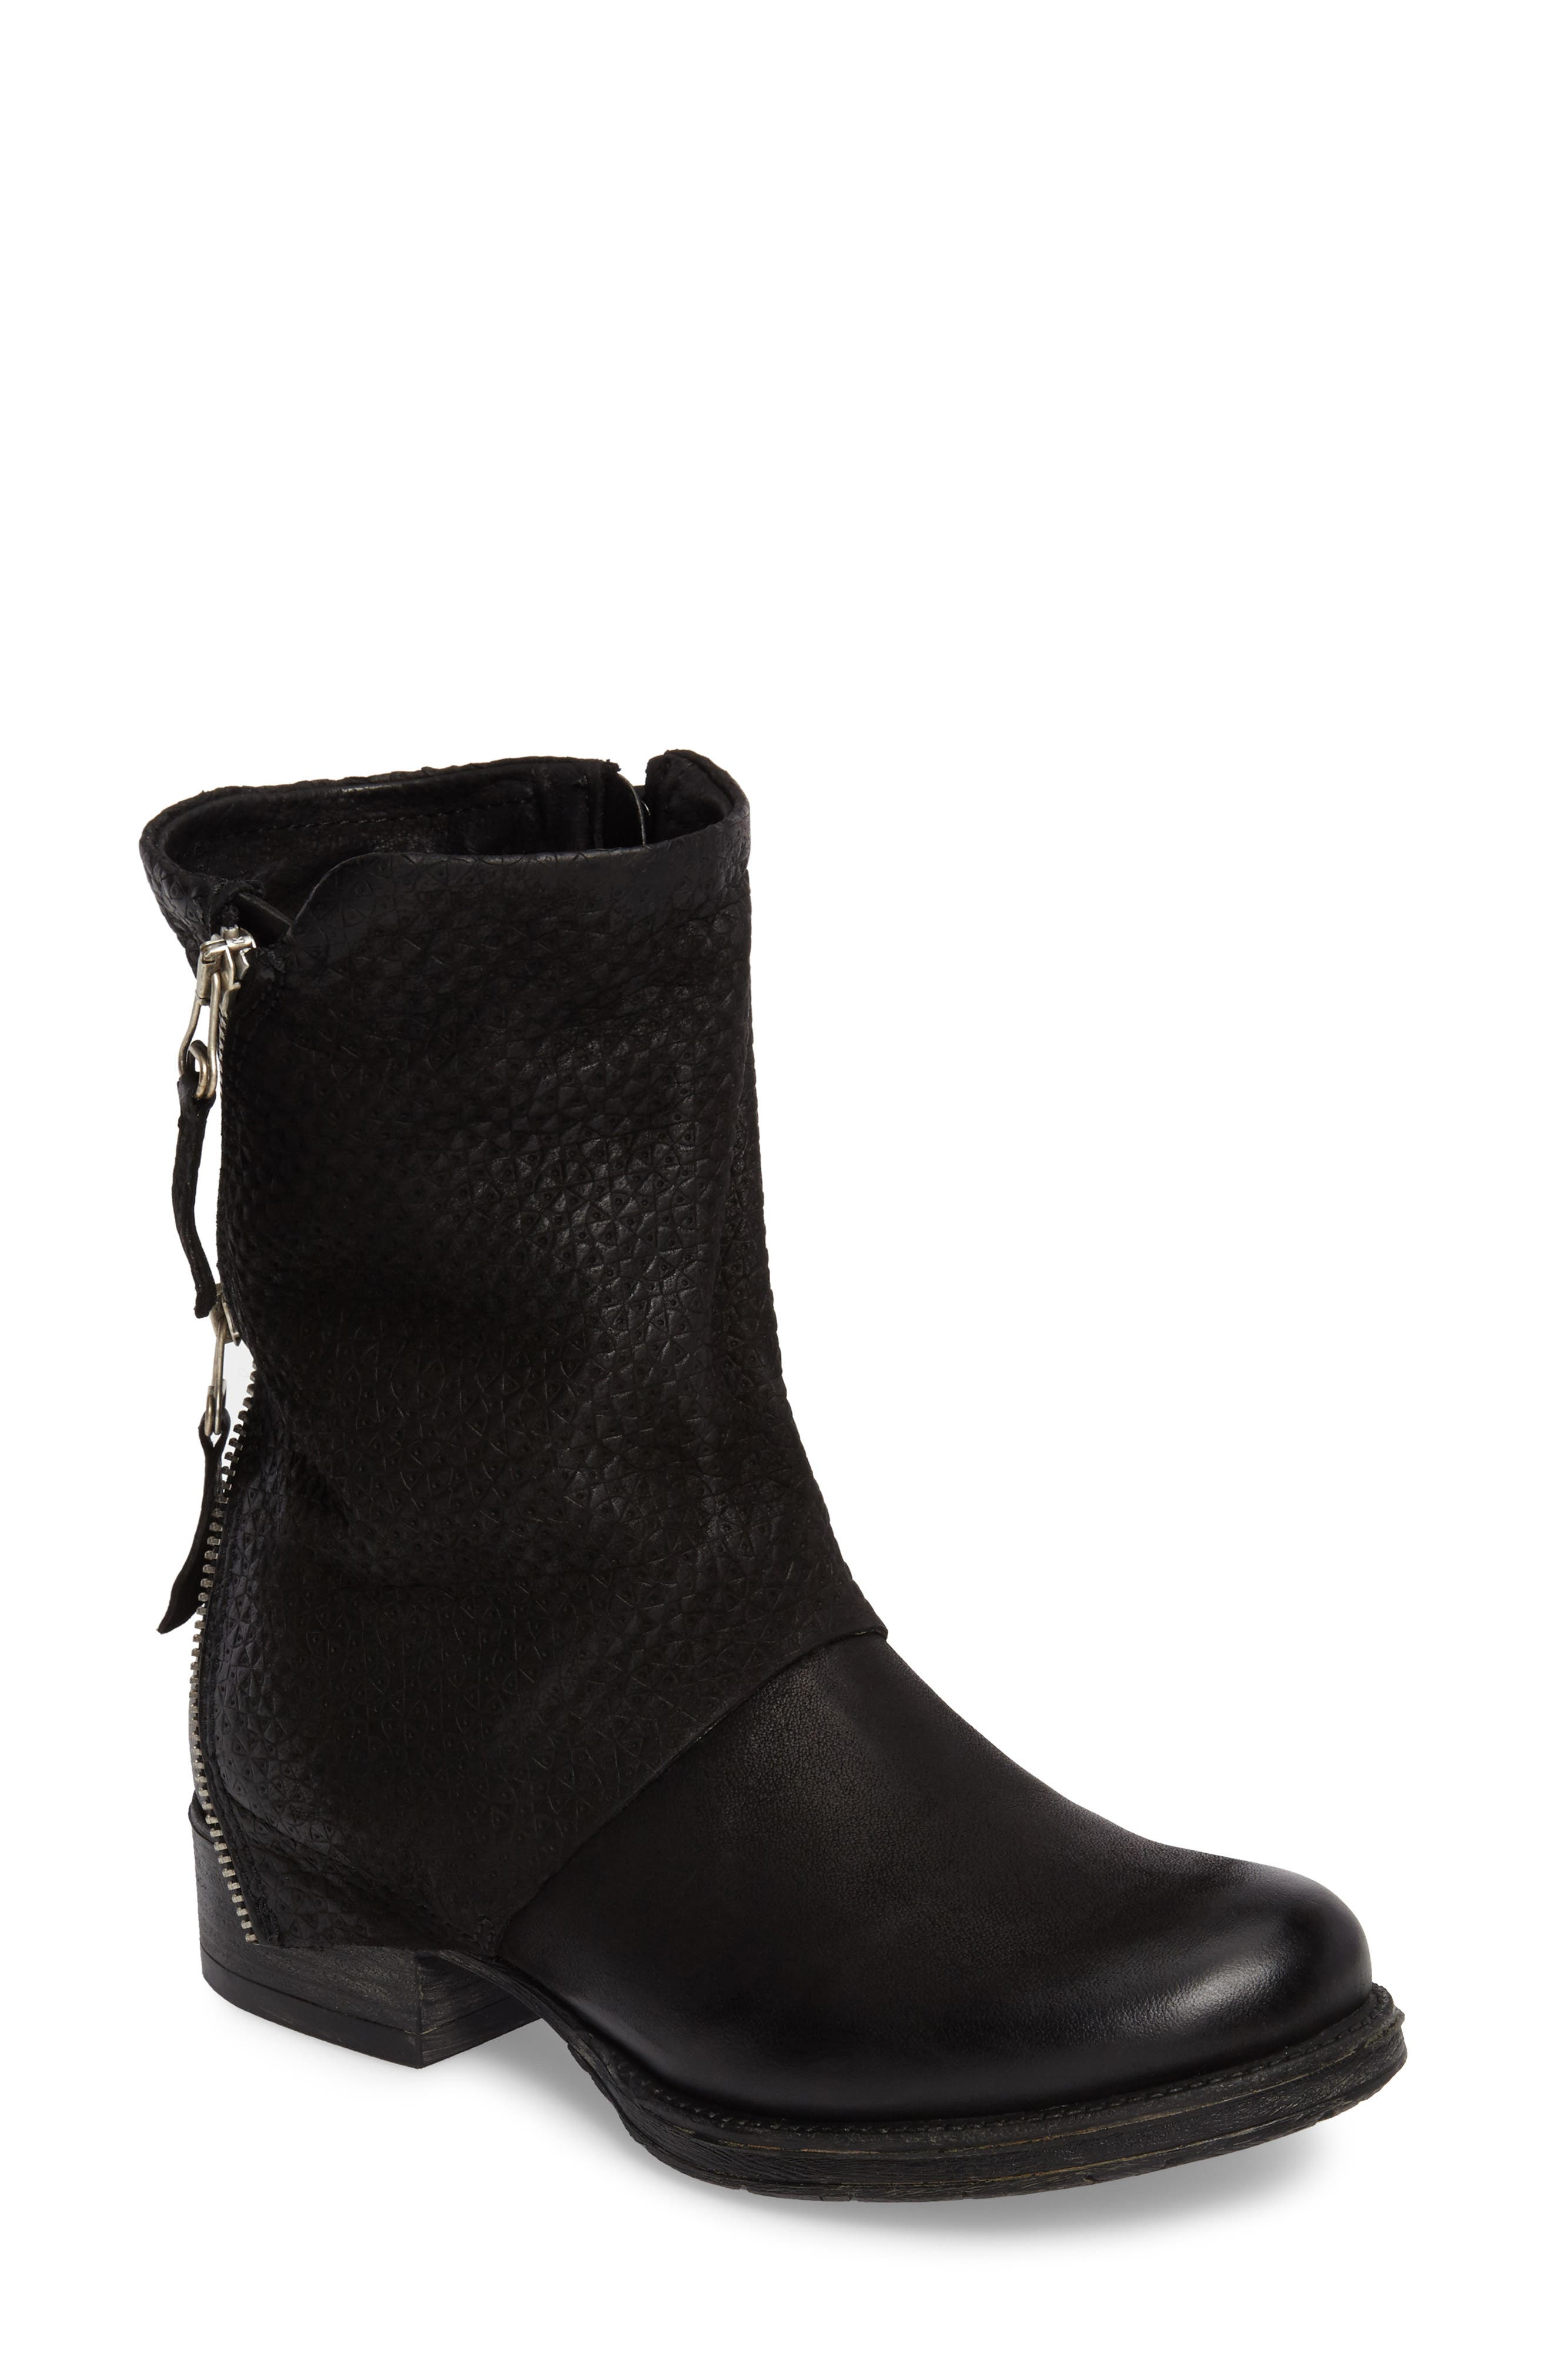 Nugget Asymmetrical Textured Boot,                         Main,                         color, 001